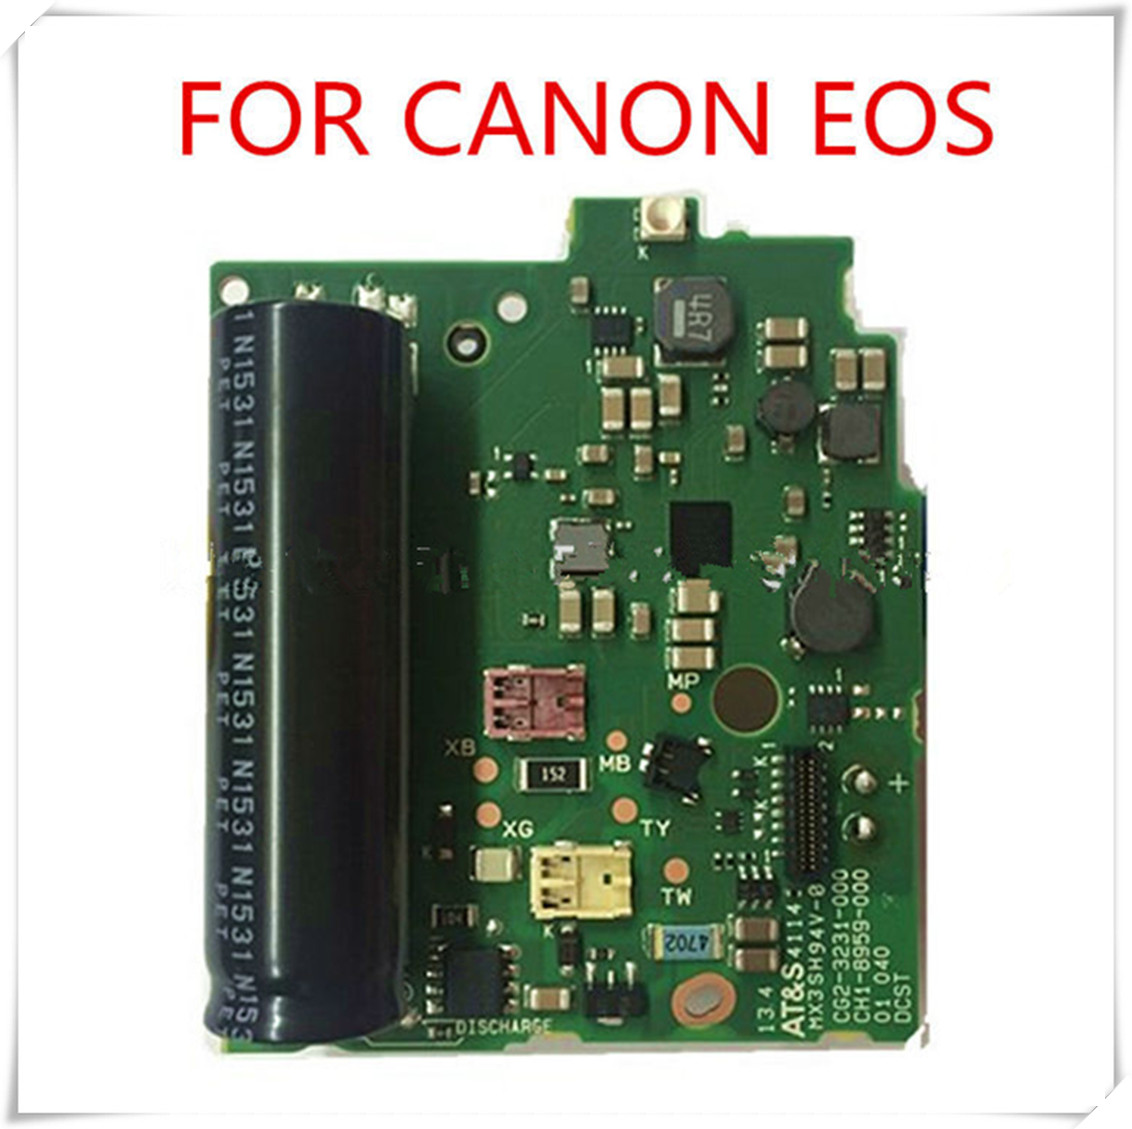 Free shipping 100% NEW original  DSLR Camera FOR Canon 650D EOS Rebel T4i EOS Kiss X6i-2 power board repair partsFree shipping 100% NEW original  DSLR Camera FOR Canon 650D EOS Rebel T4i EOS Kiss X6i-2 power board repair parts